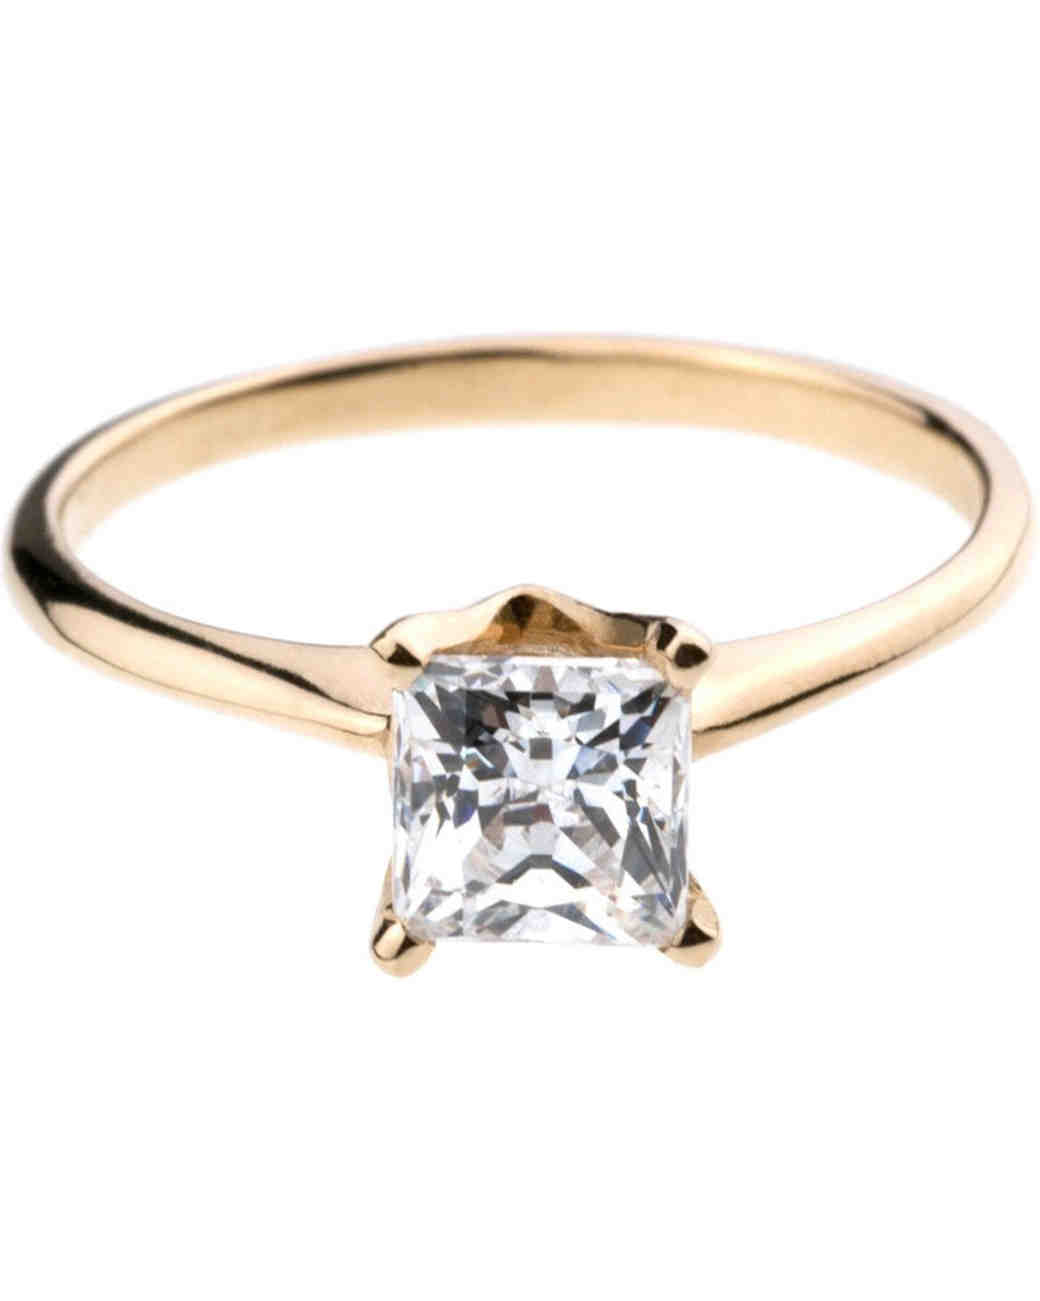 diamond elegance princess product products square rings wedding image fashion ring luxury cut